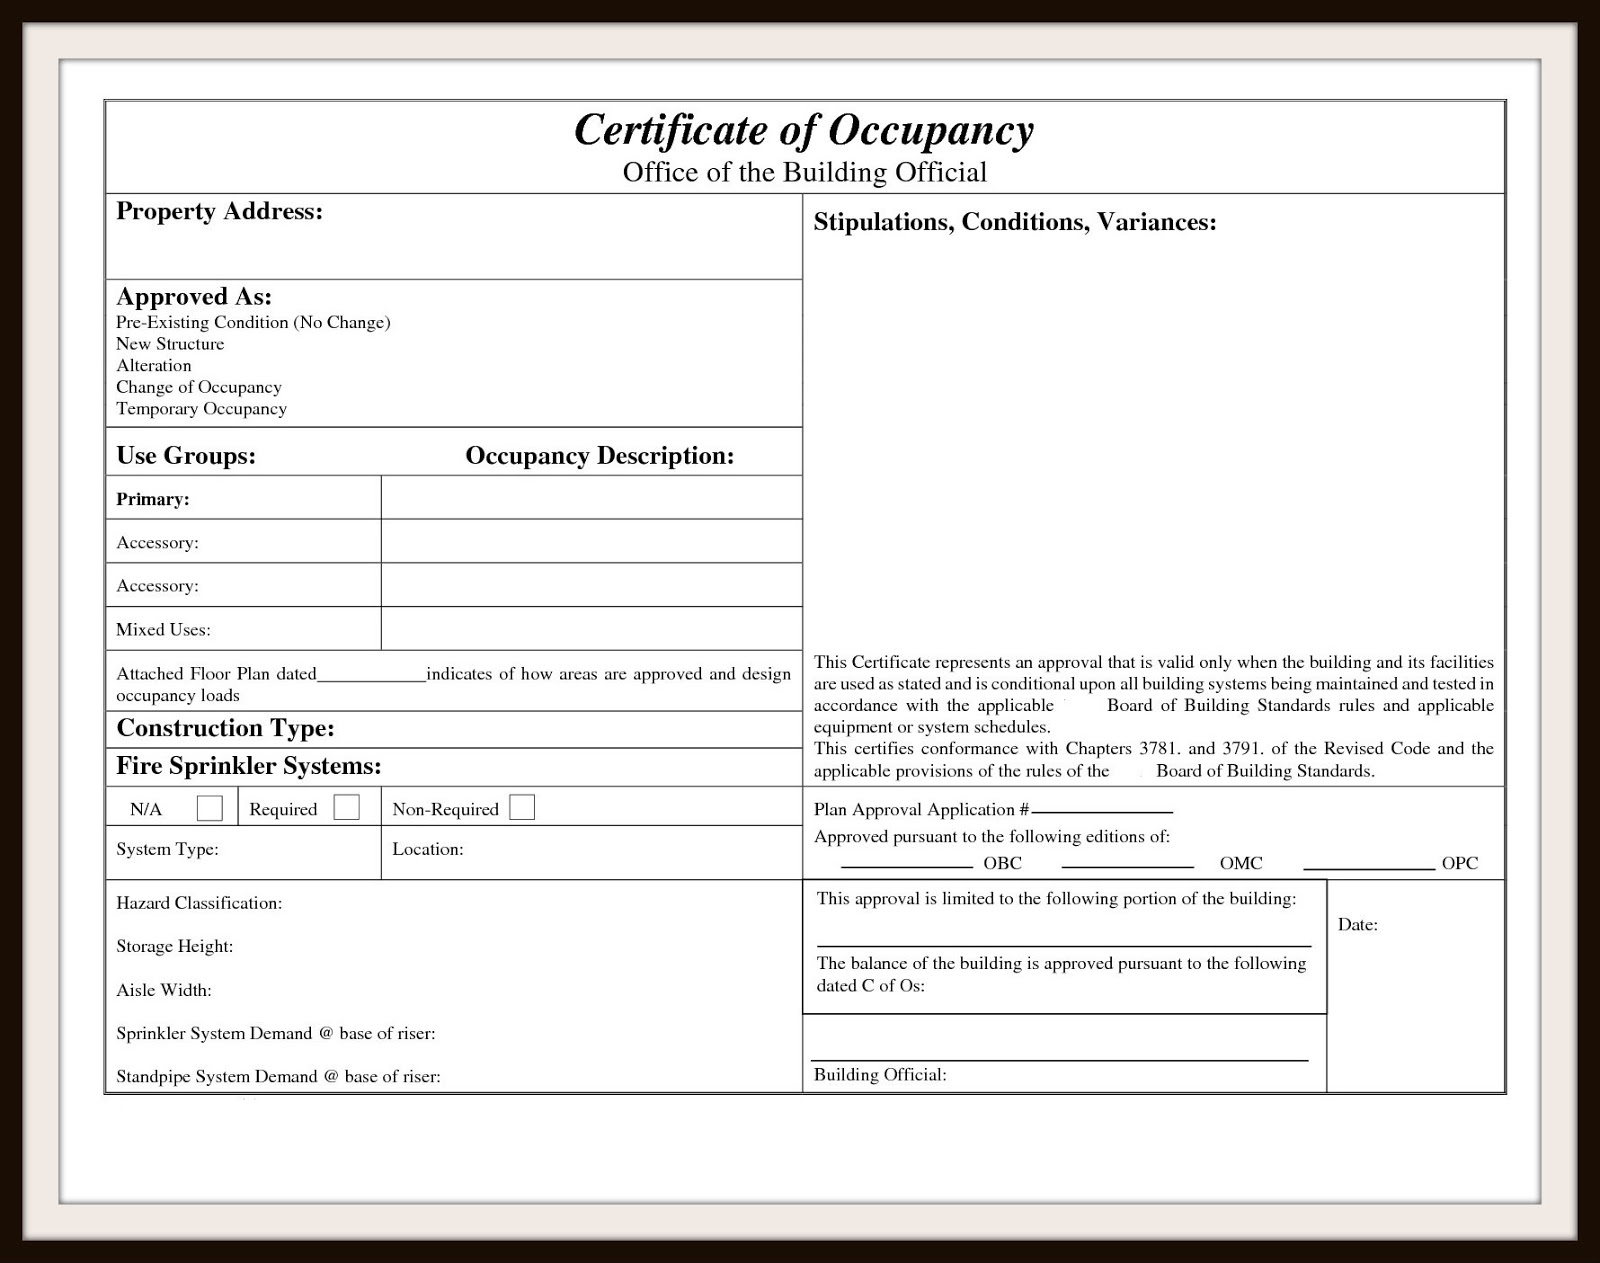 What is Certificate of Occupancy